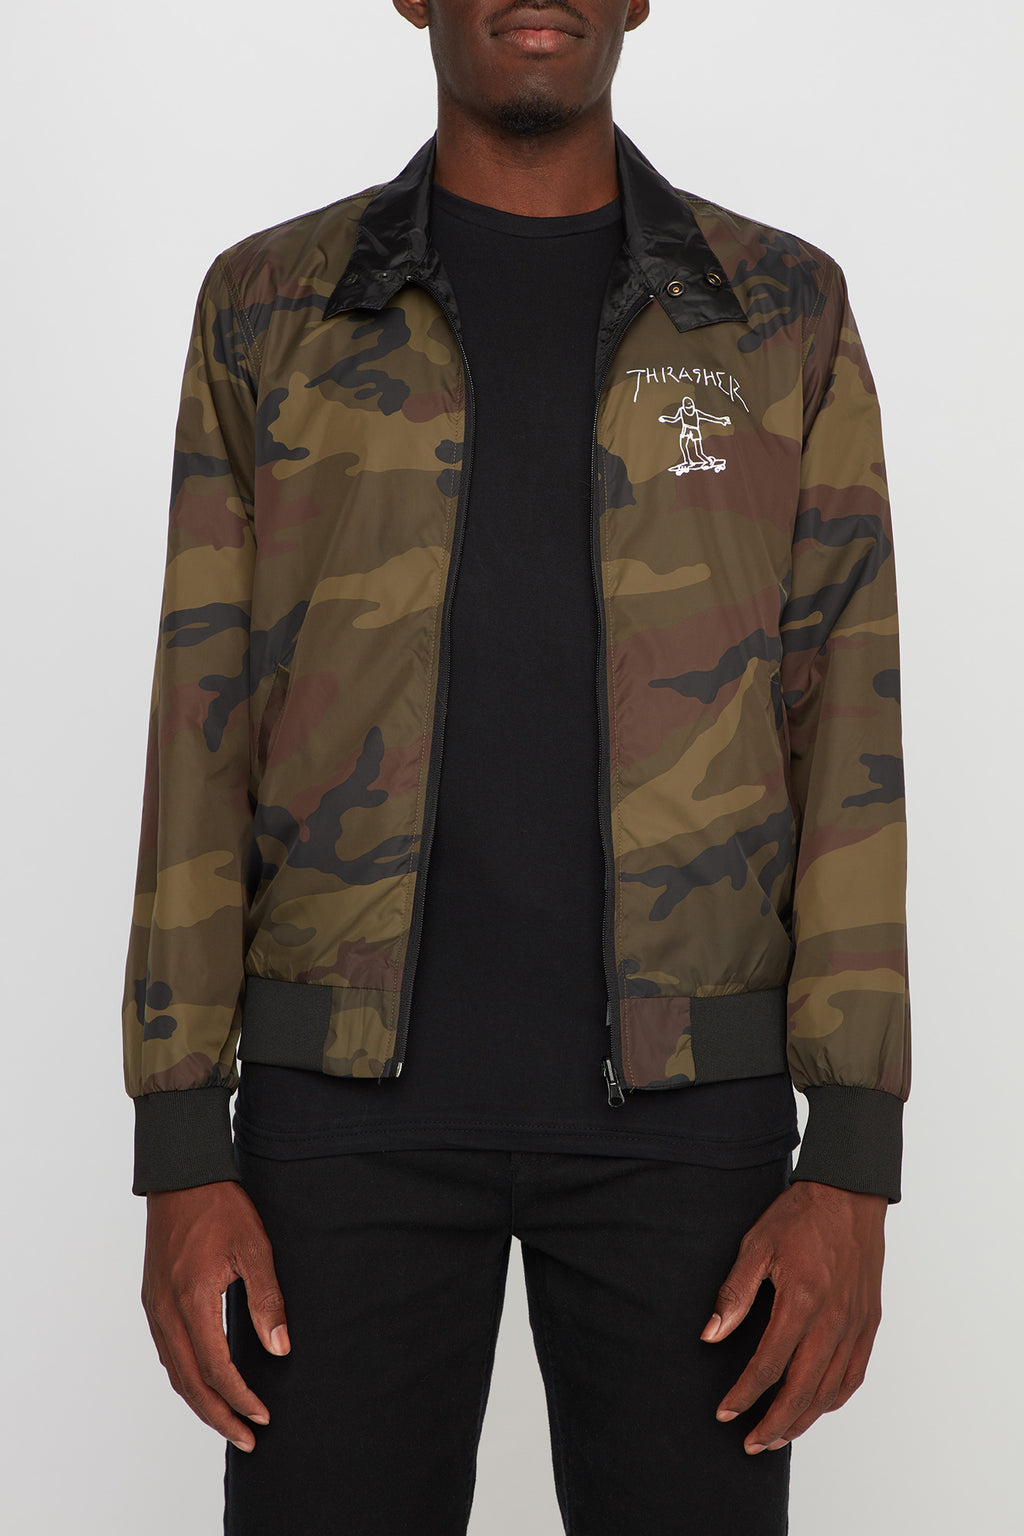 Thrasher Mag Men's Reversible Jacket